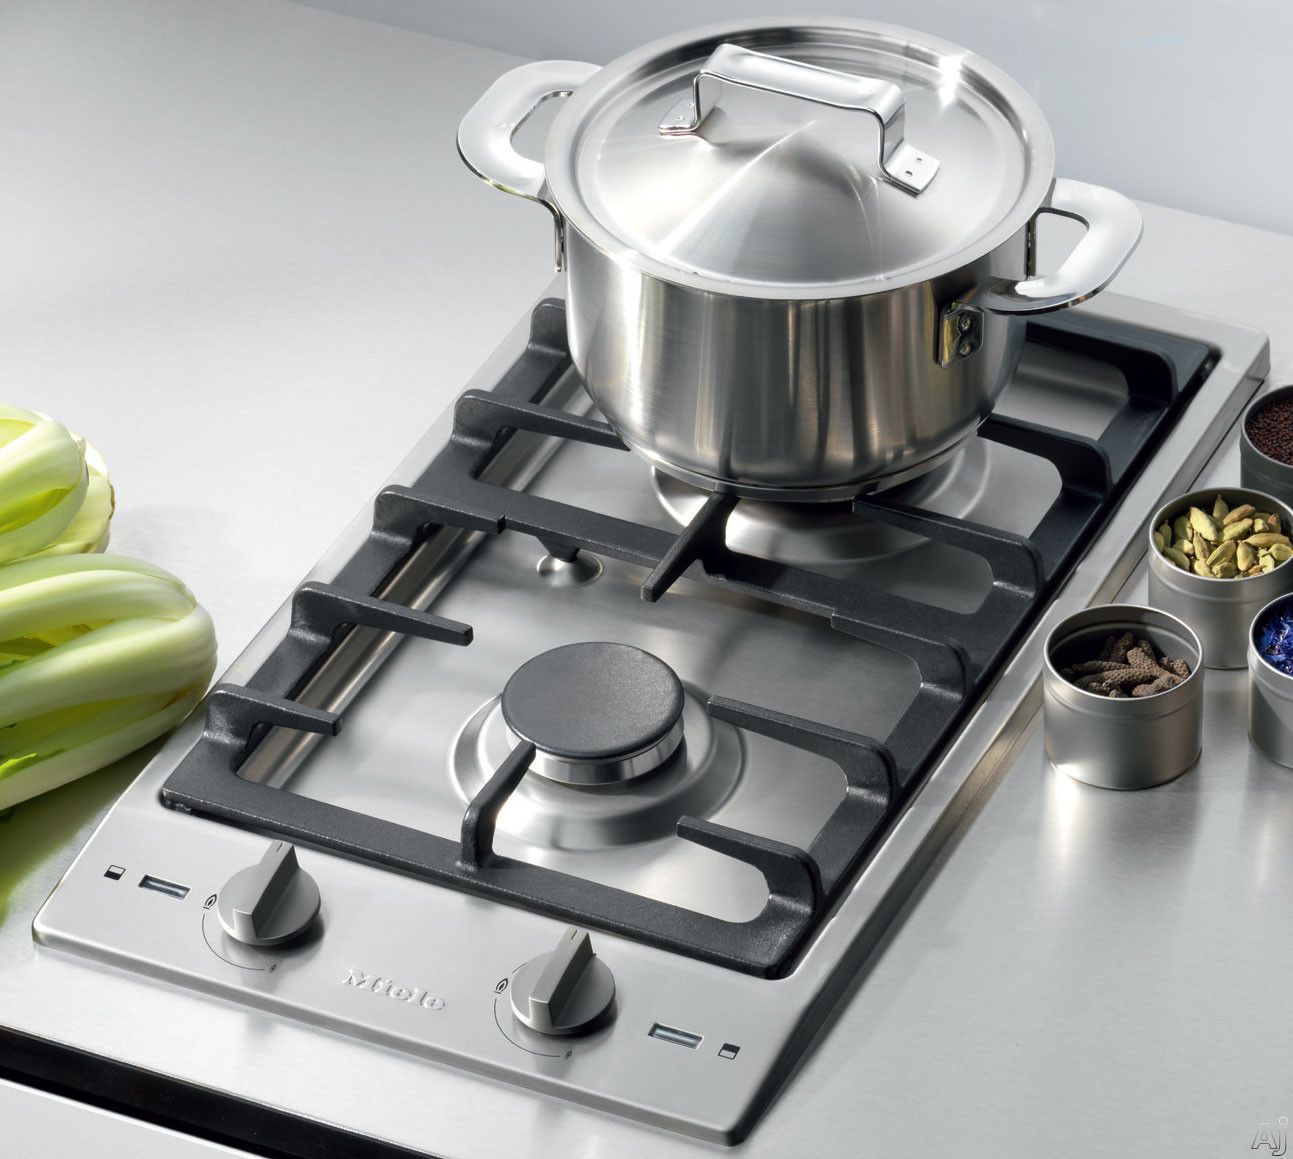 "Miele CS 12"" Gas Cooktop with 2 Sealed Burners"